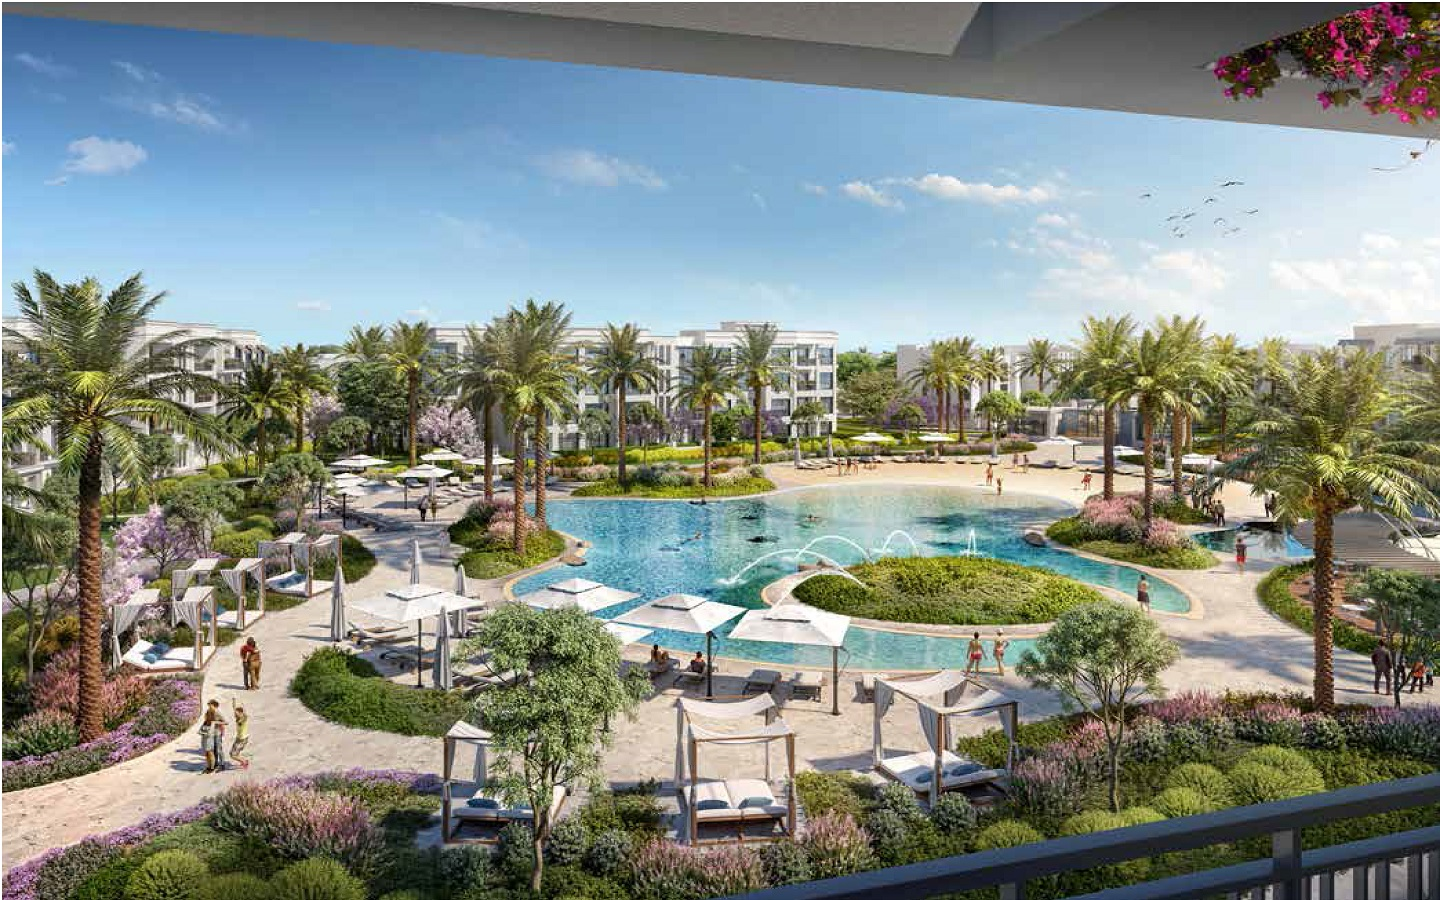 Belle Vie Emaar New Zayed 6 October - Emaar Misr Compound Apartments for sale townhouse and villa - Location & Prices 8 Gates Real Estate Egypt